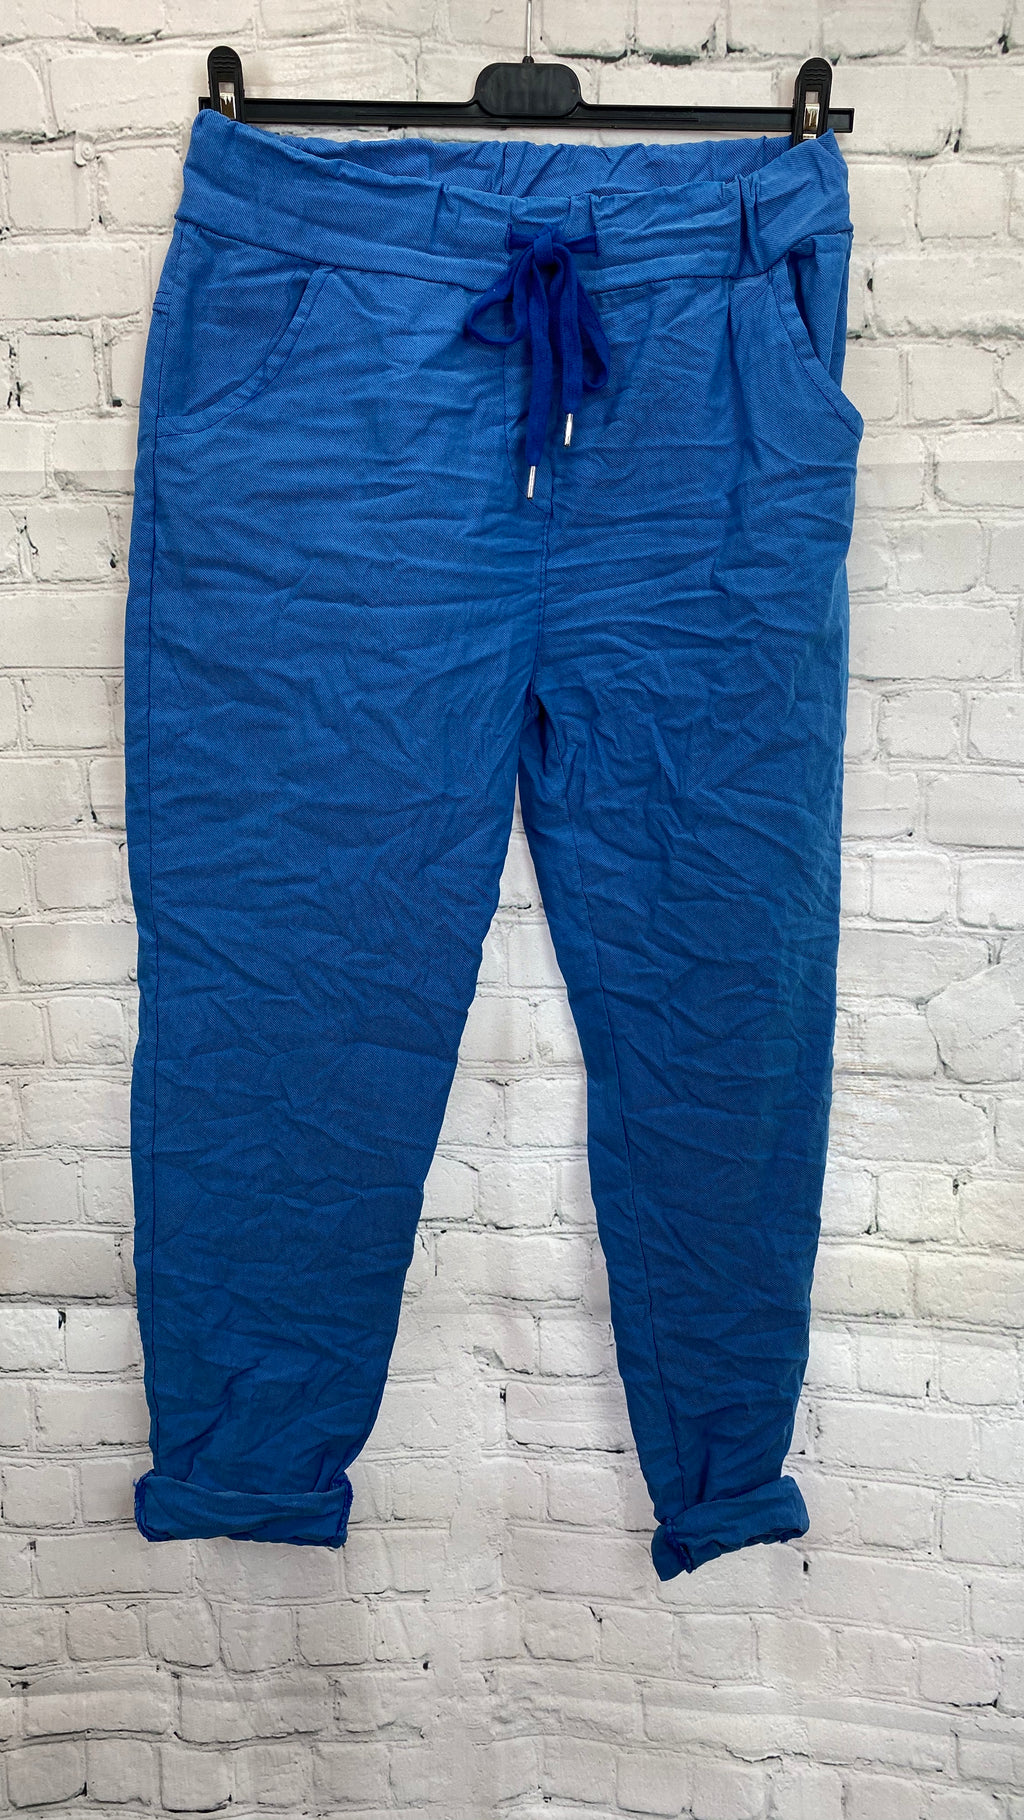 Plain Drawstring Magic Trousers - Bright Blue